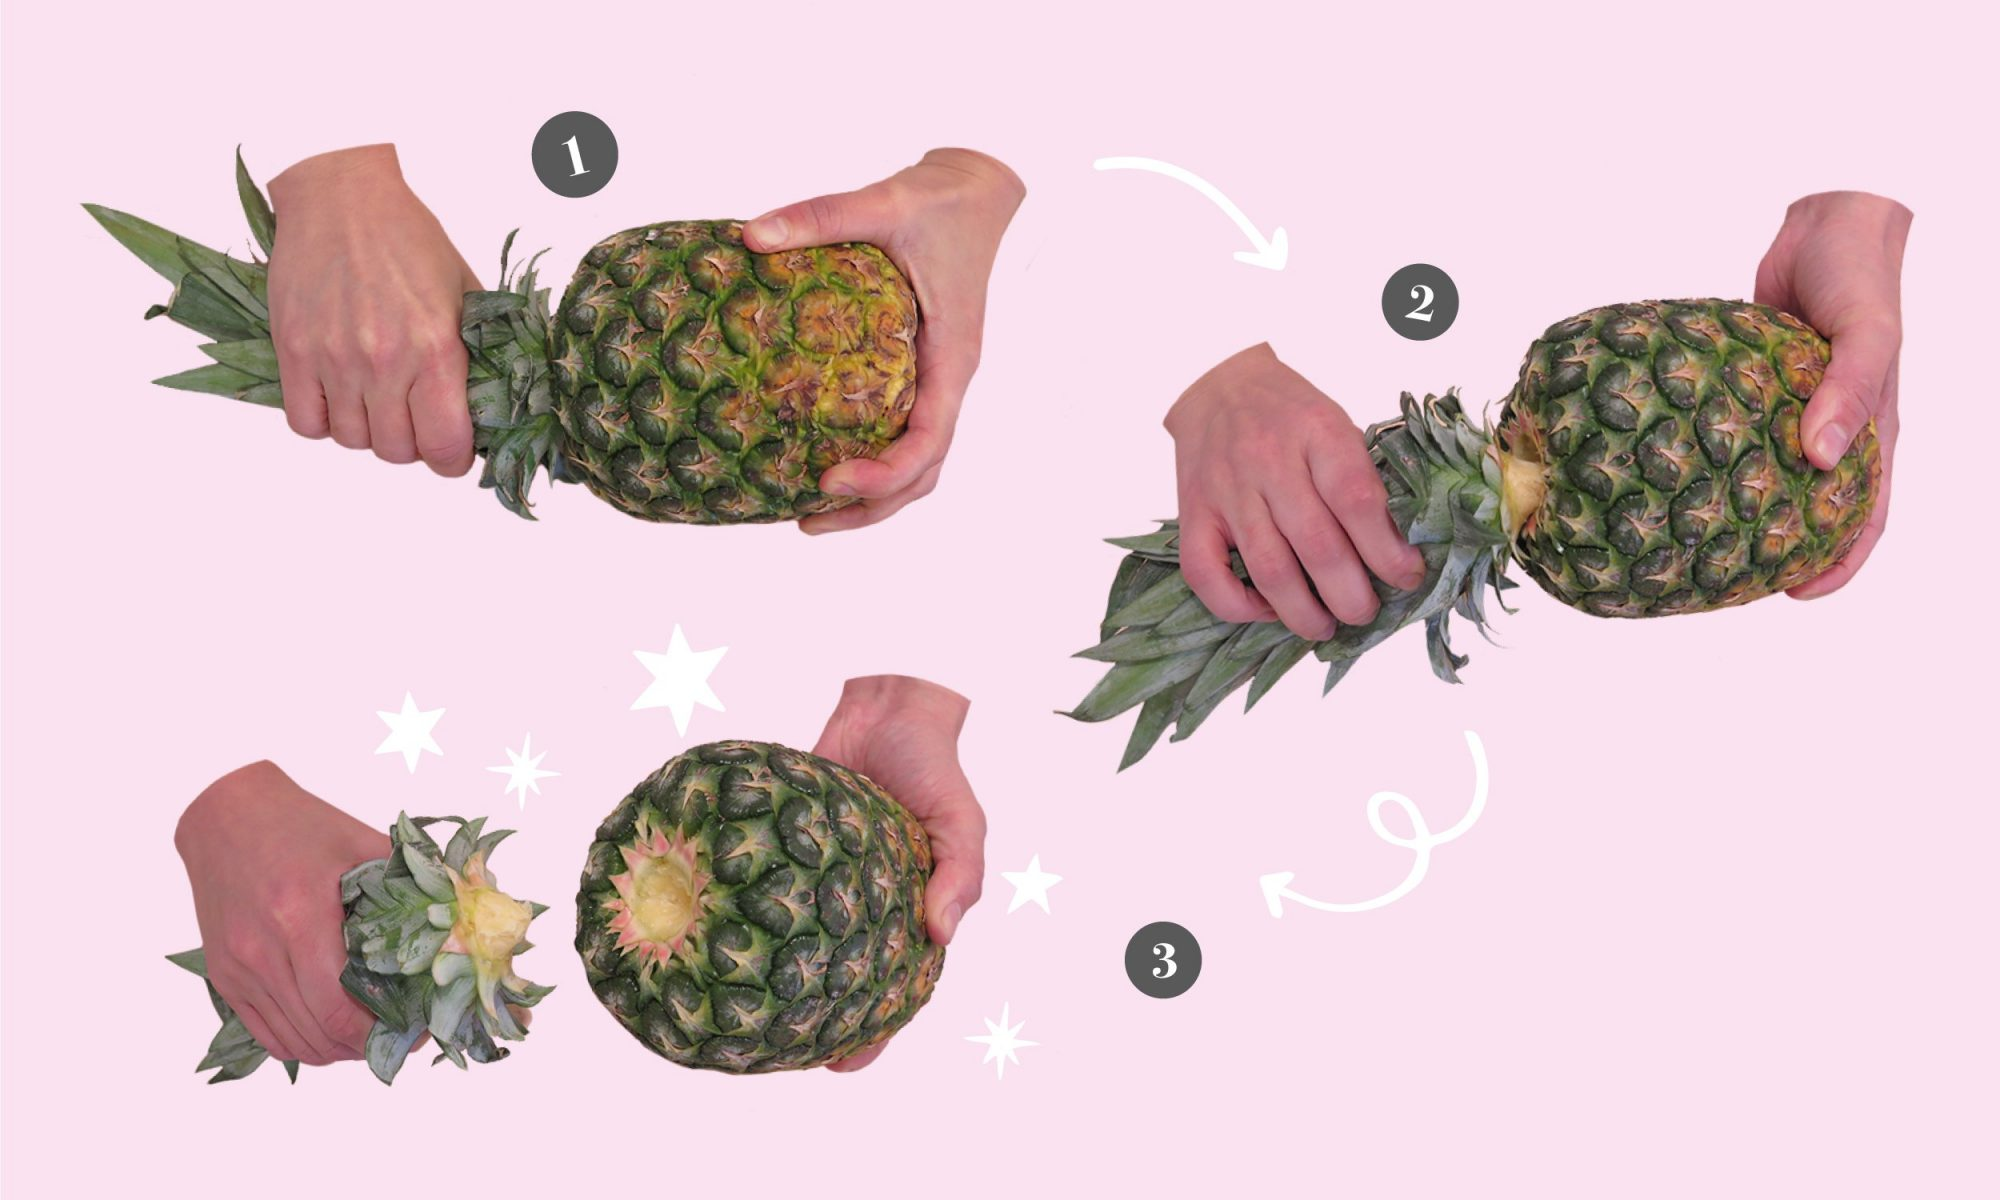 EC: This Is the Right Way to Cut Up a Pineapple